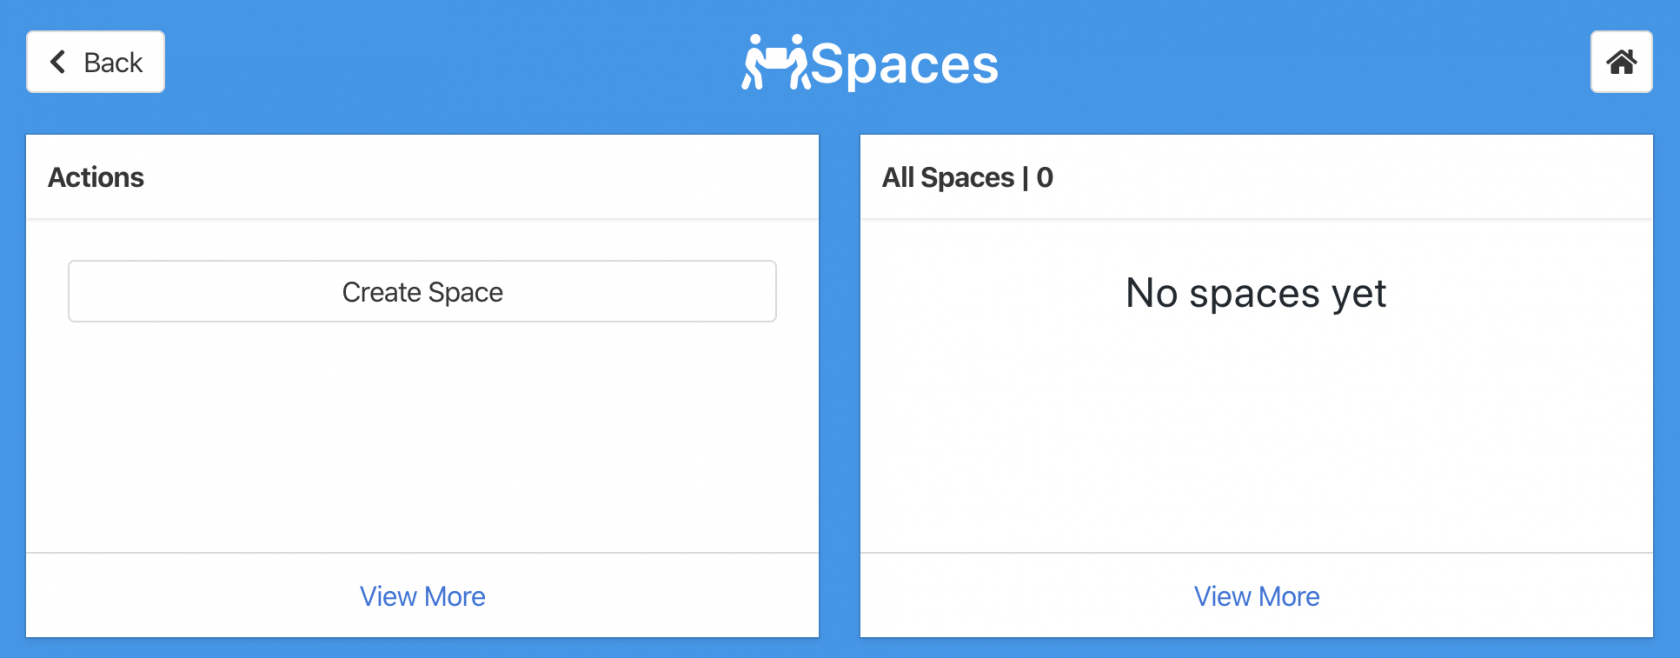 spaces-index-view.png